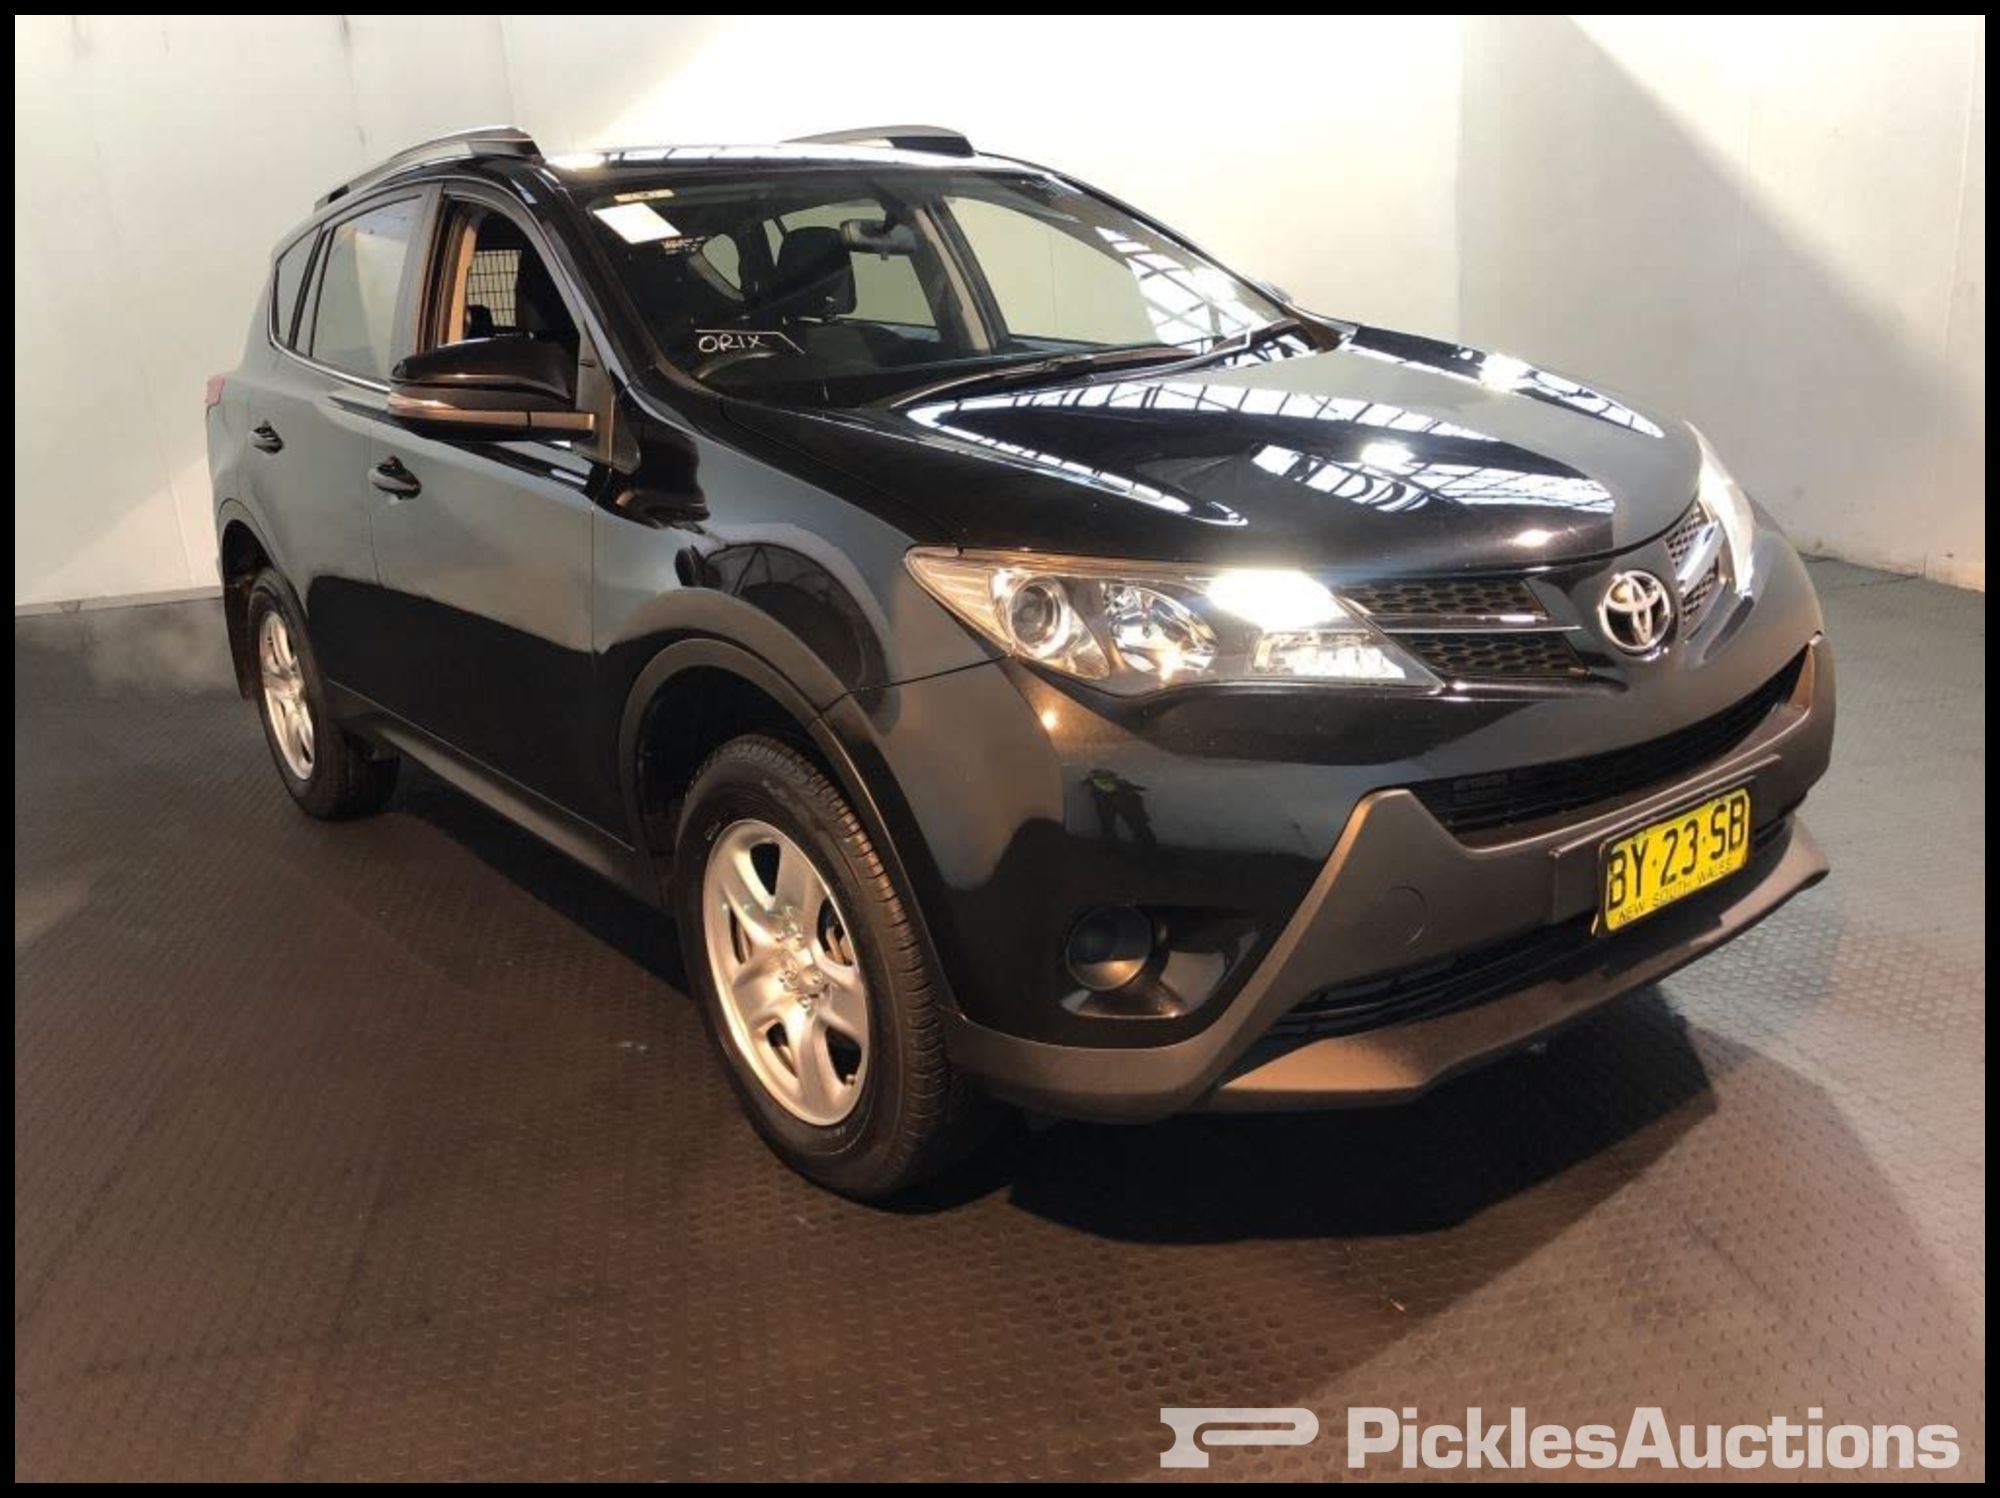 Hot 2014 toyota Rav4 Pickles Reviews